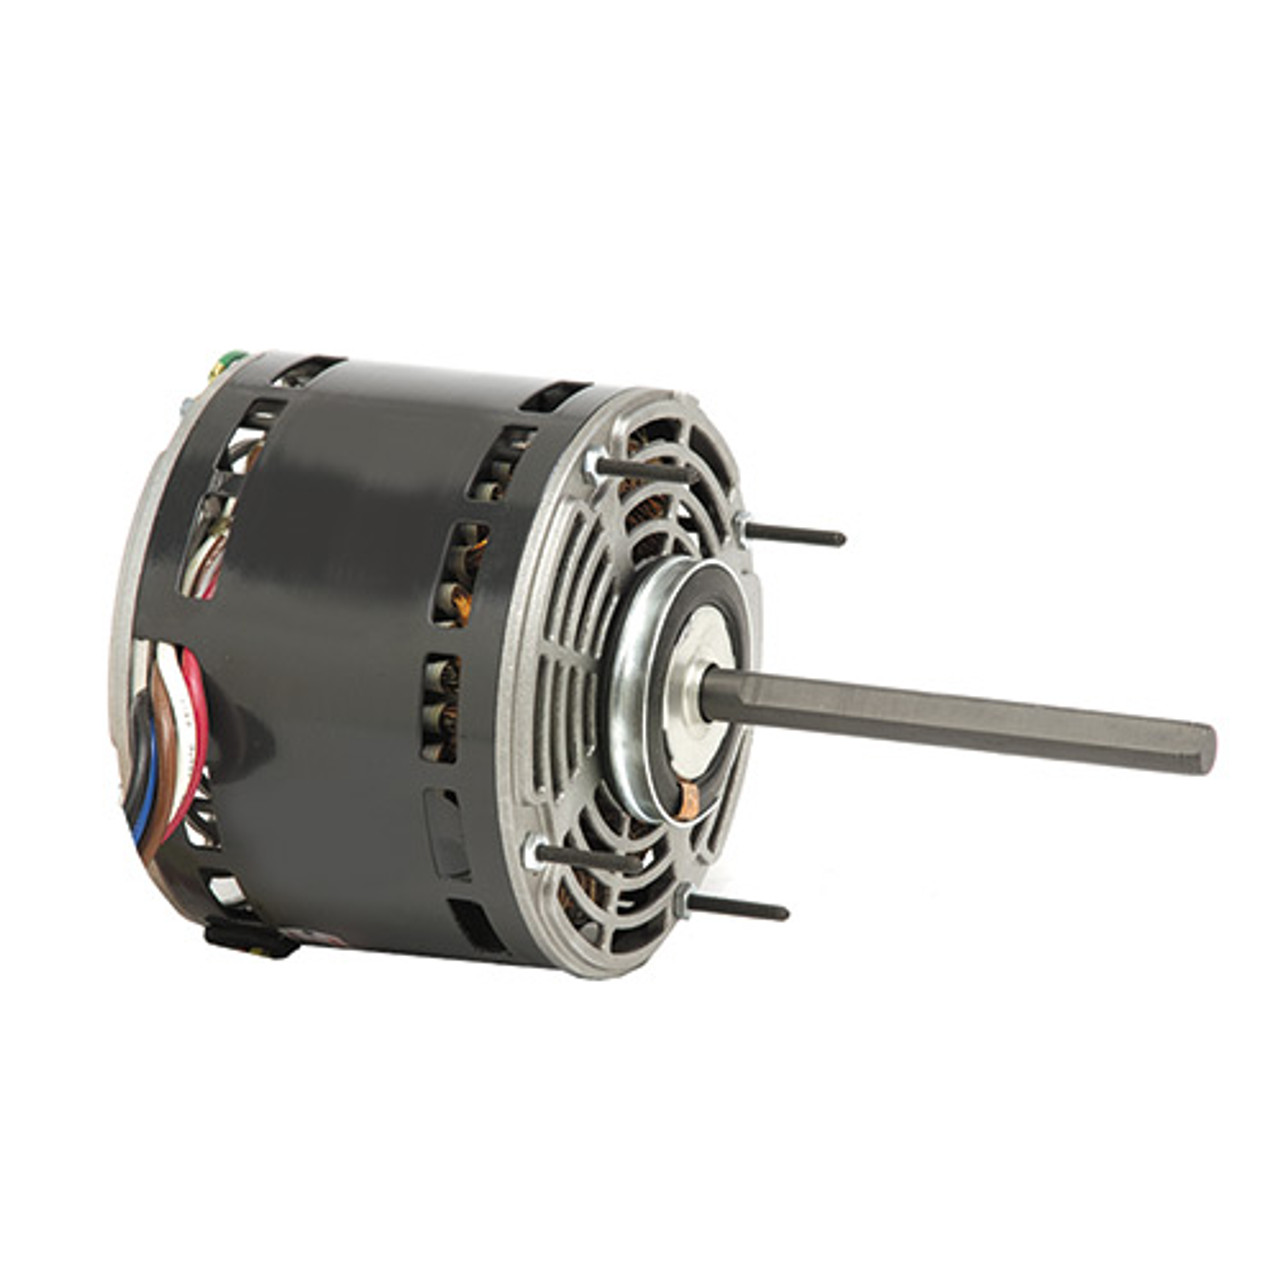 5845 Direct Drive Fan and Blower Four Speed 3/4 HP